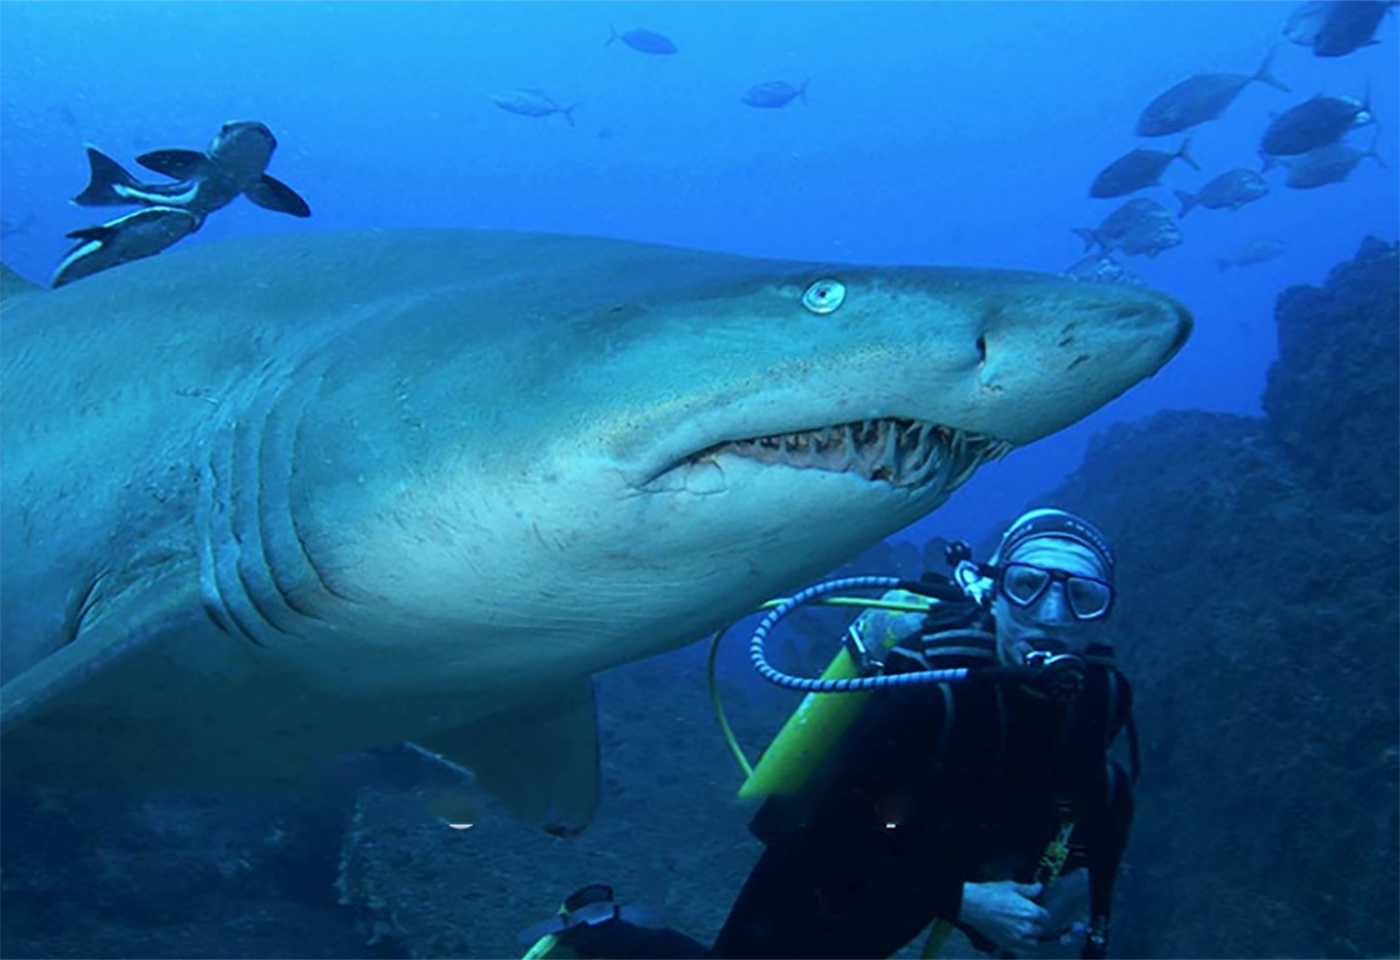 Underwater image of a shark and diver